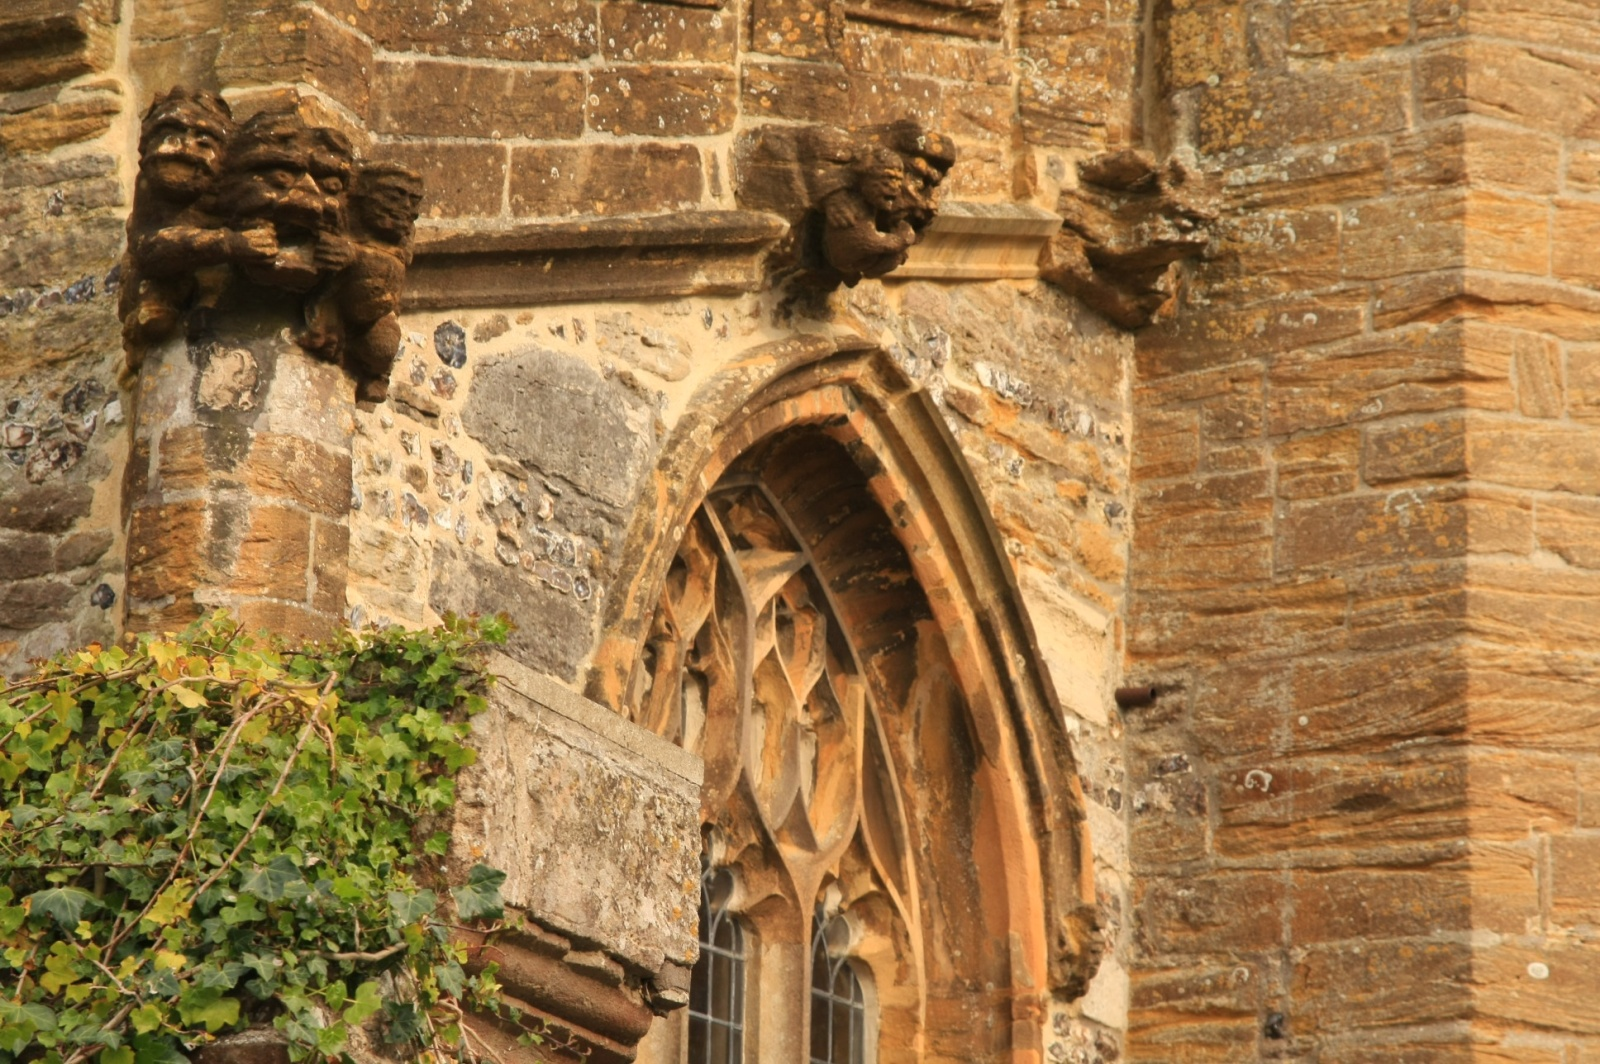 The abbey is guarded with nice gothic gargoyles